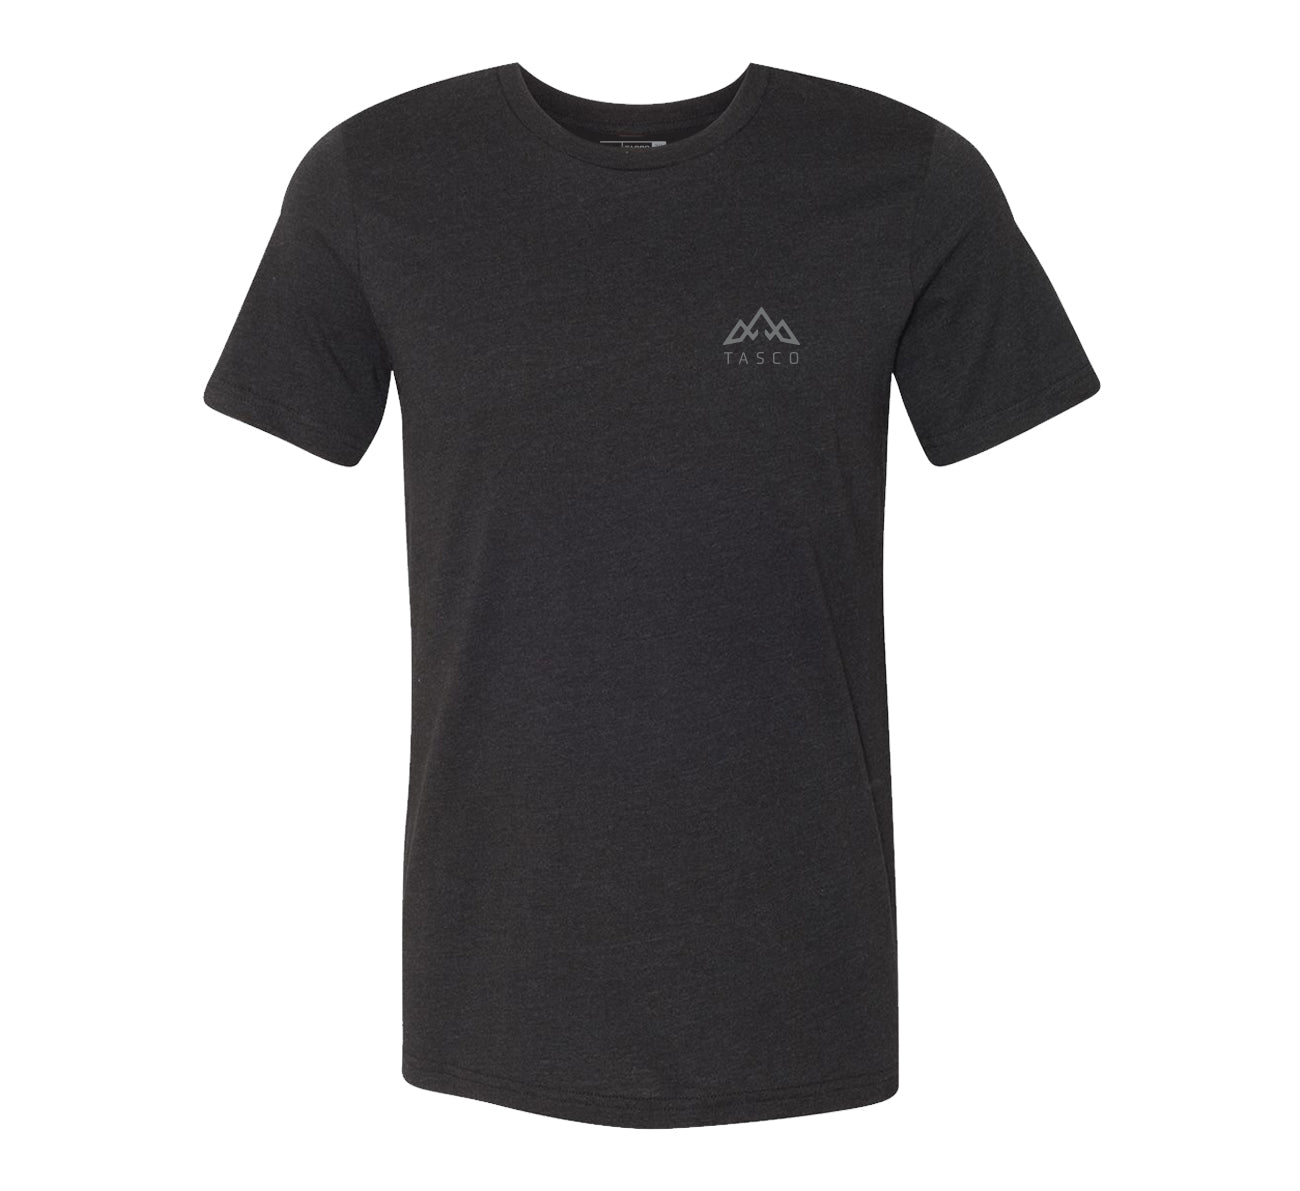 Standard T-Shirt S/S - Mens - Black & Grey